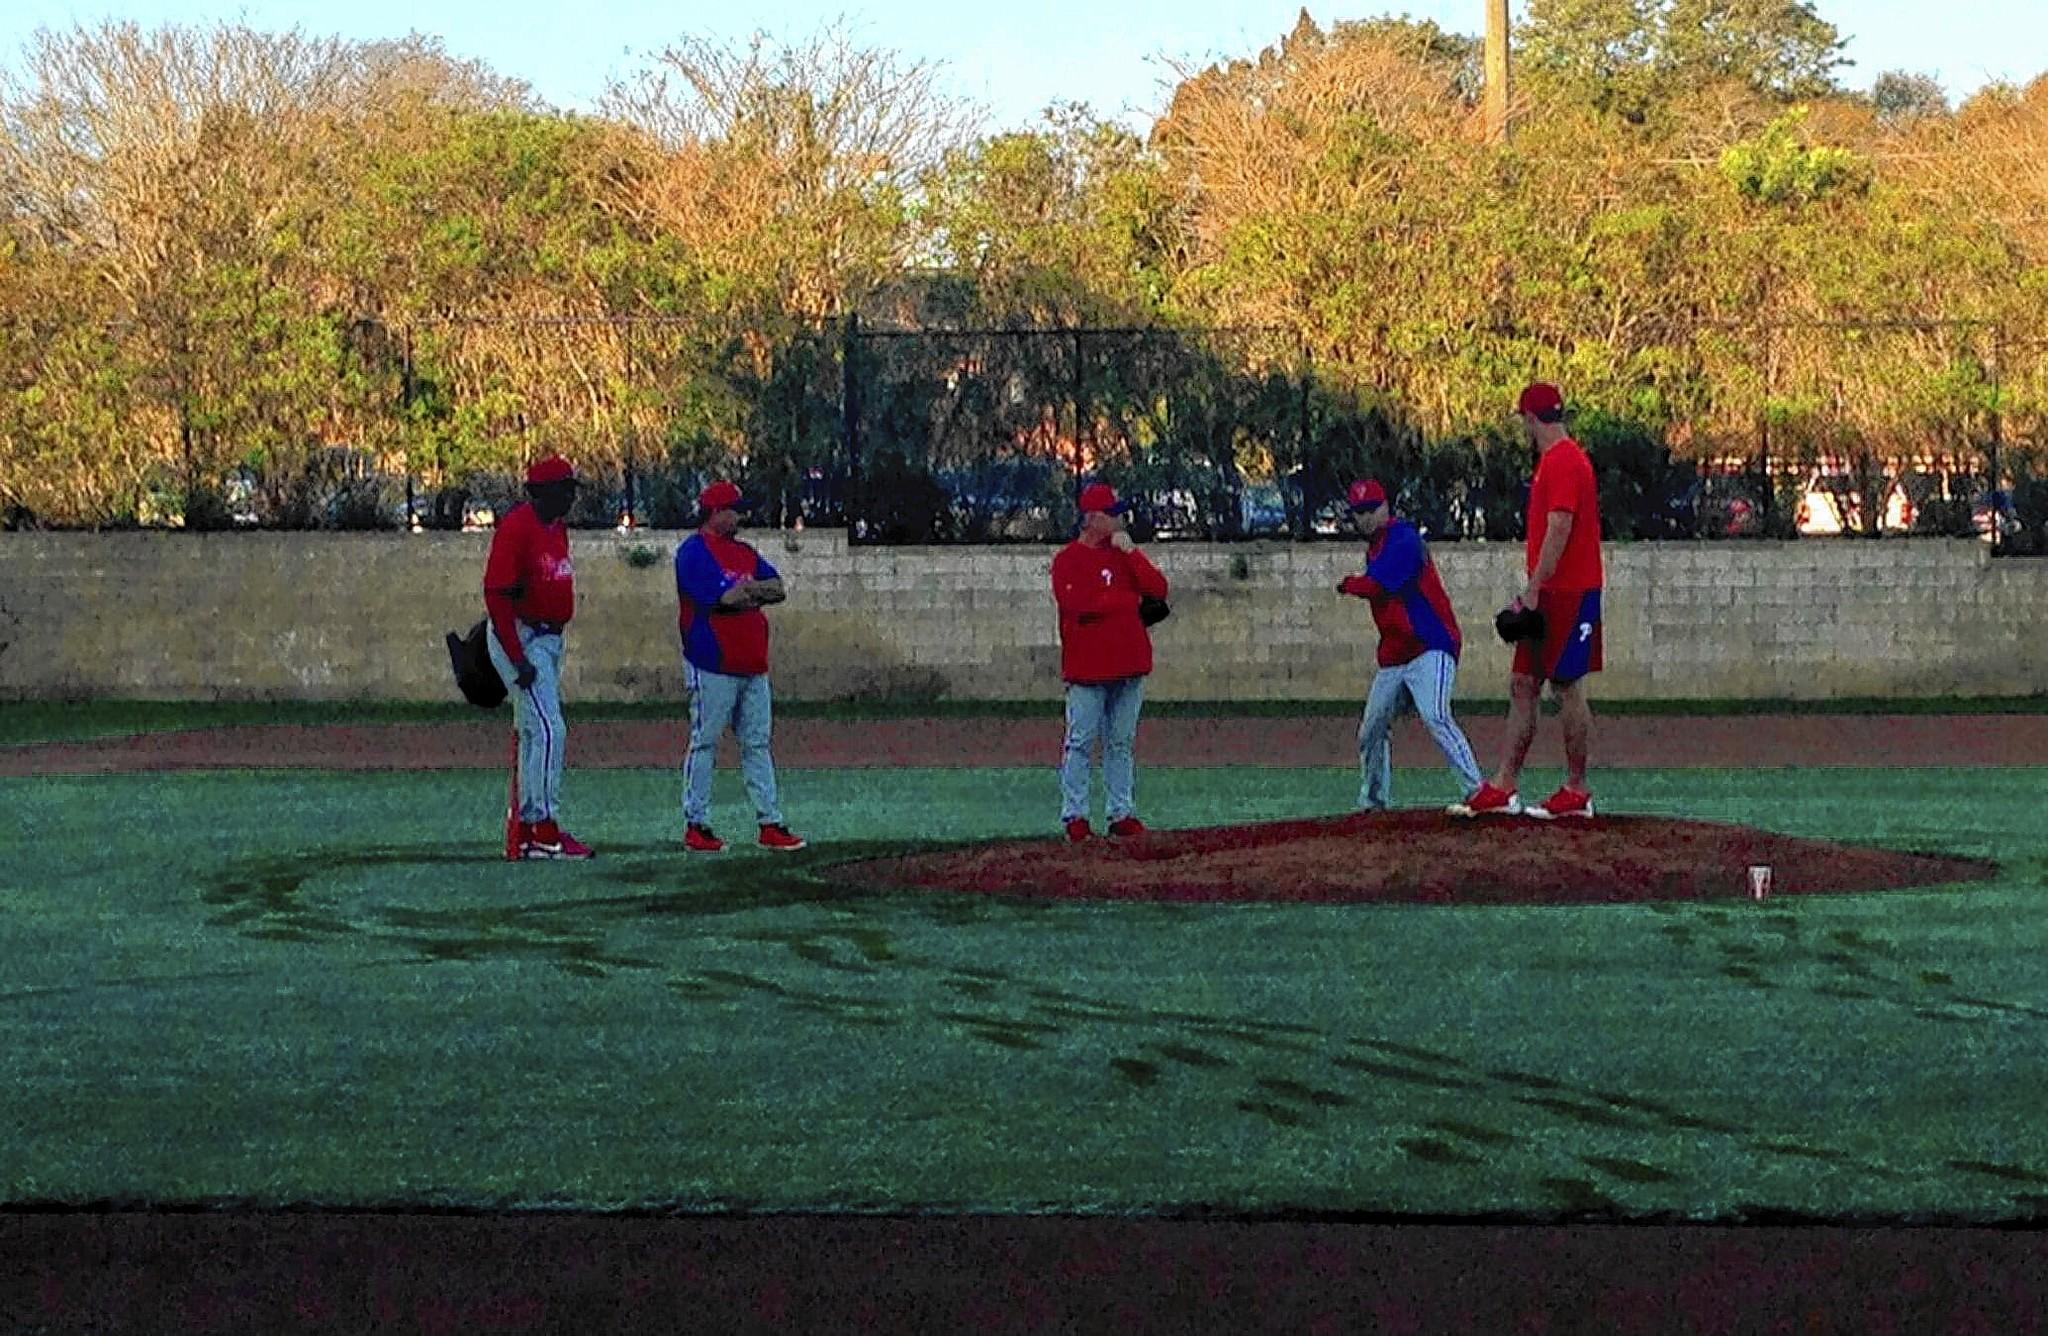 Phillies pitcher Jonathan Pettibone on the mound early Thursday morning working on mechanics while coaches watch. At Phillies spring training in Clearwater.